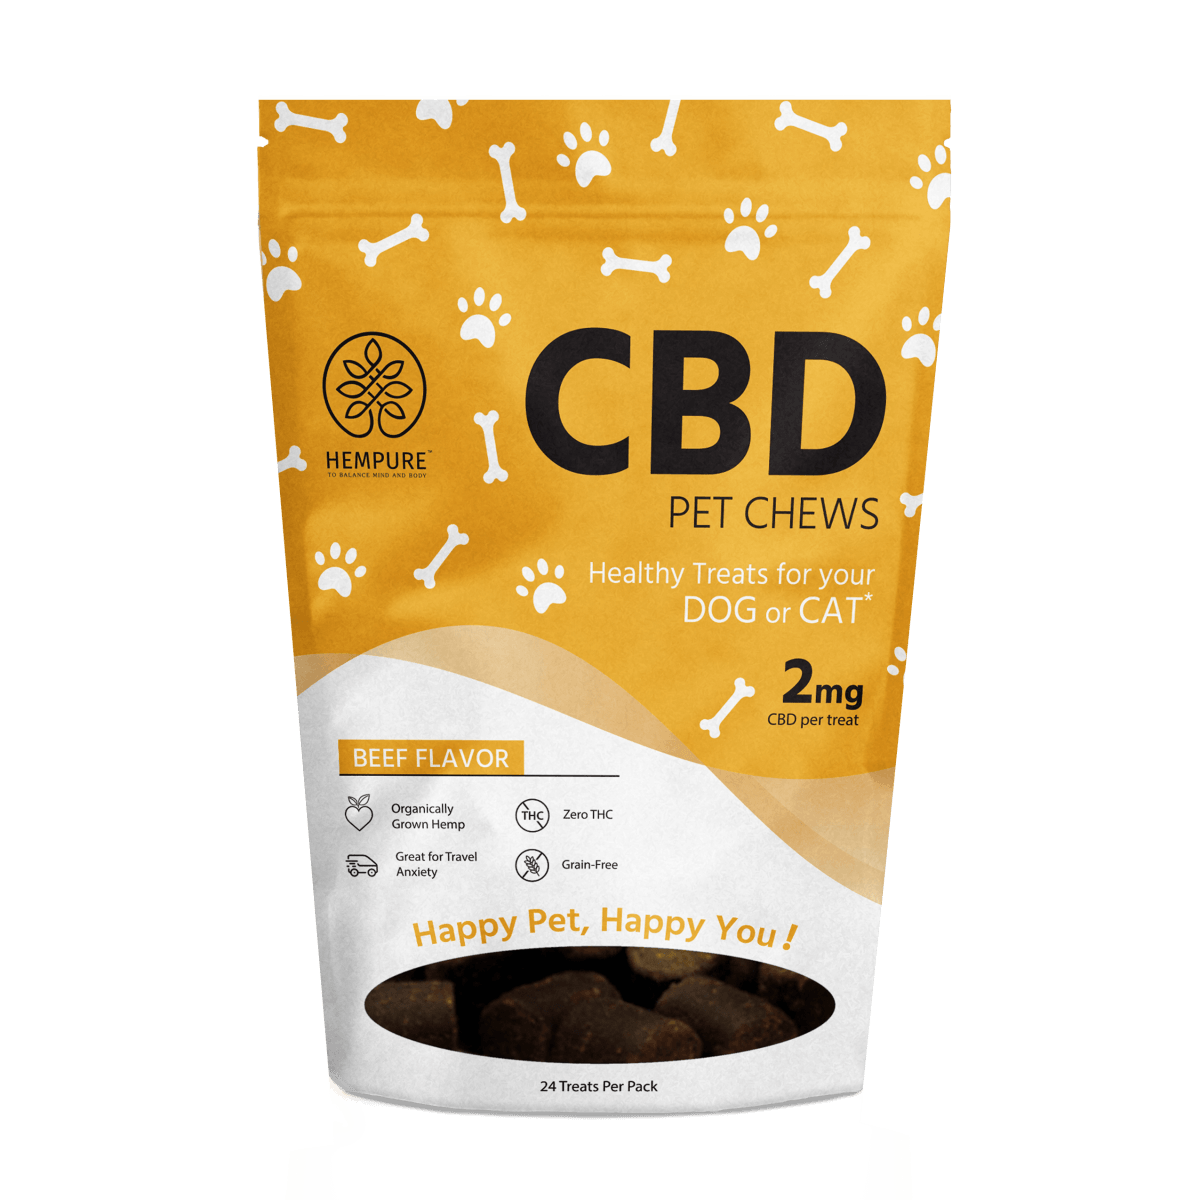 Hempure CBD Pet Treats